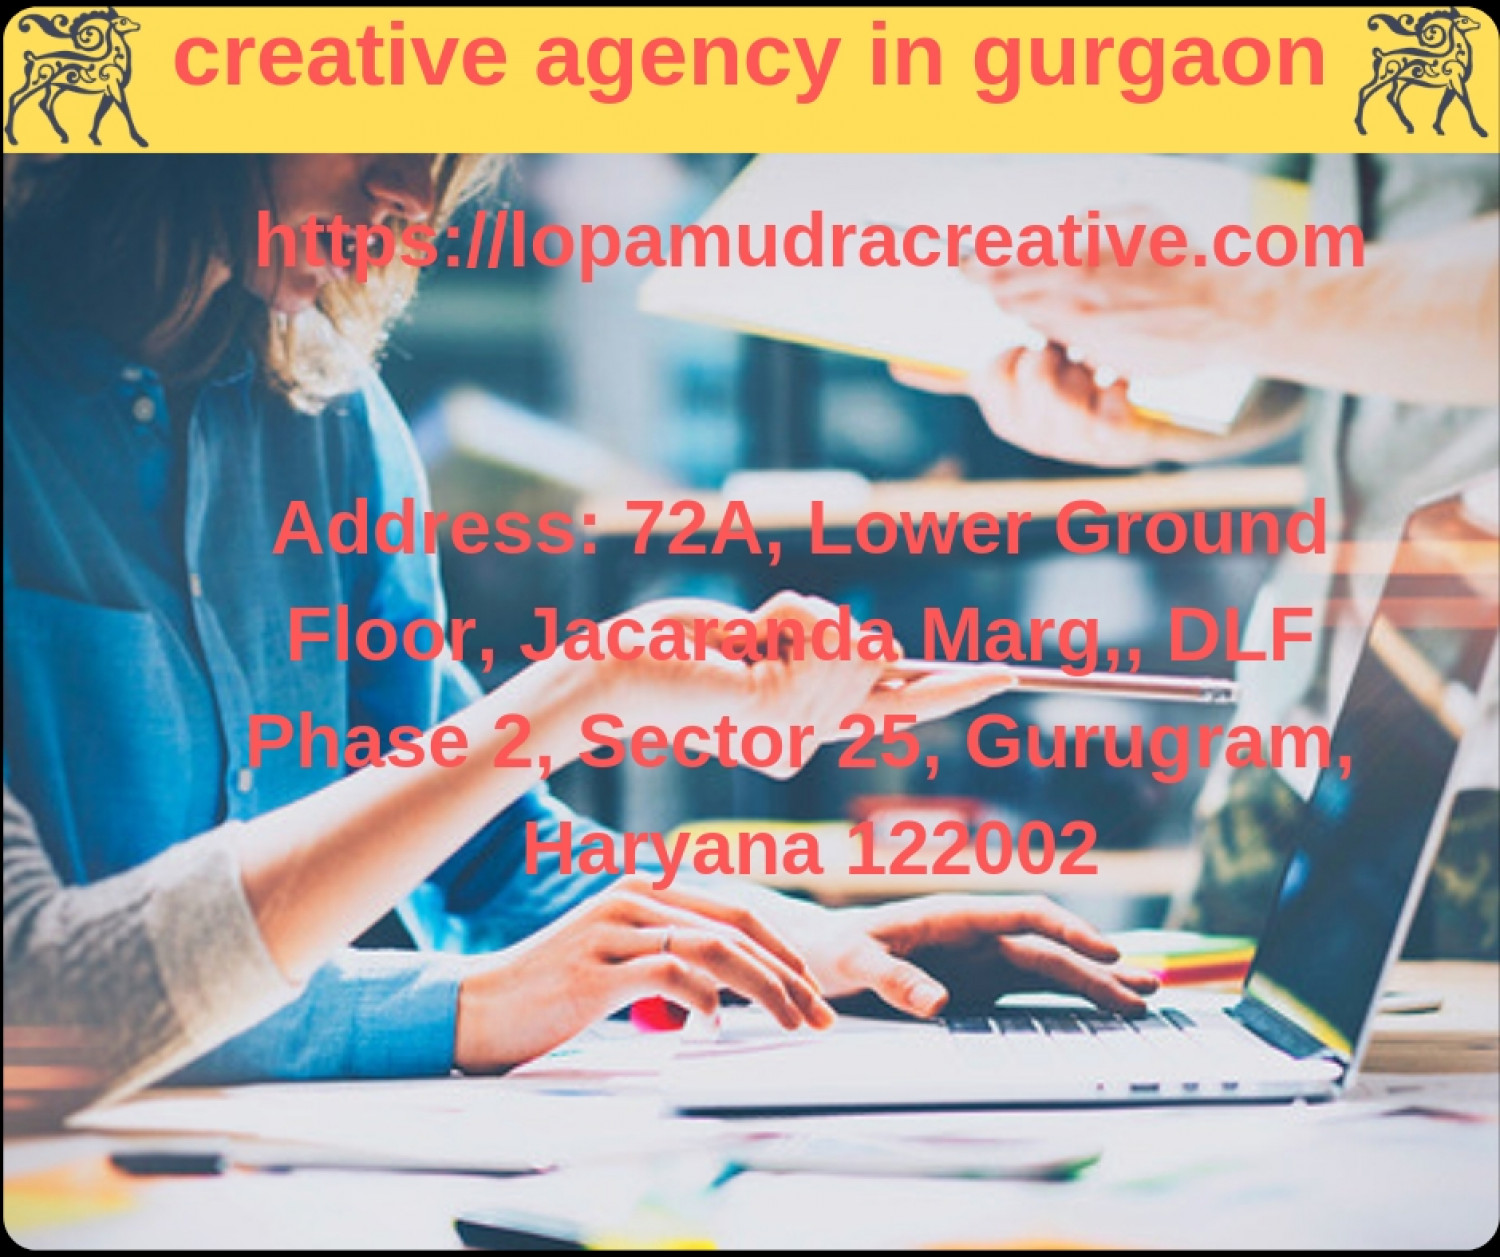 creative agency in gurgaon Infographic